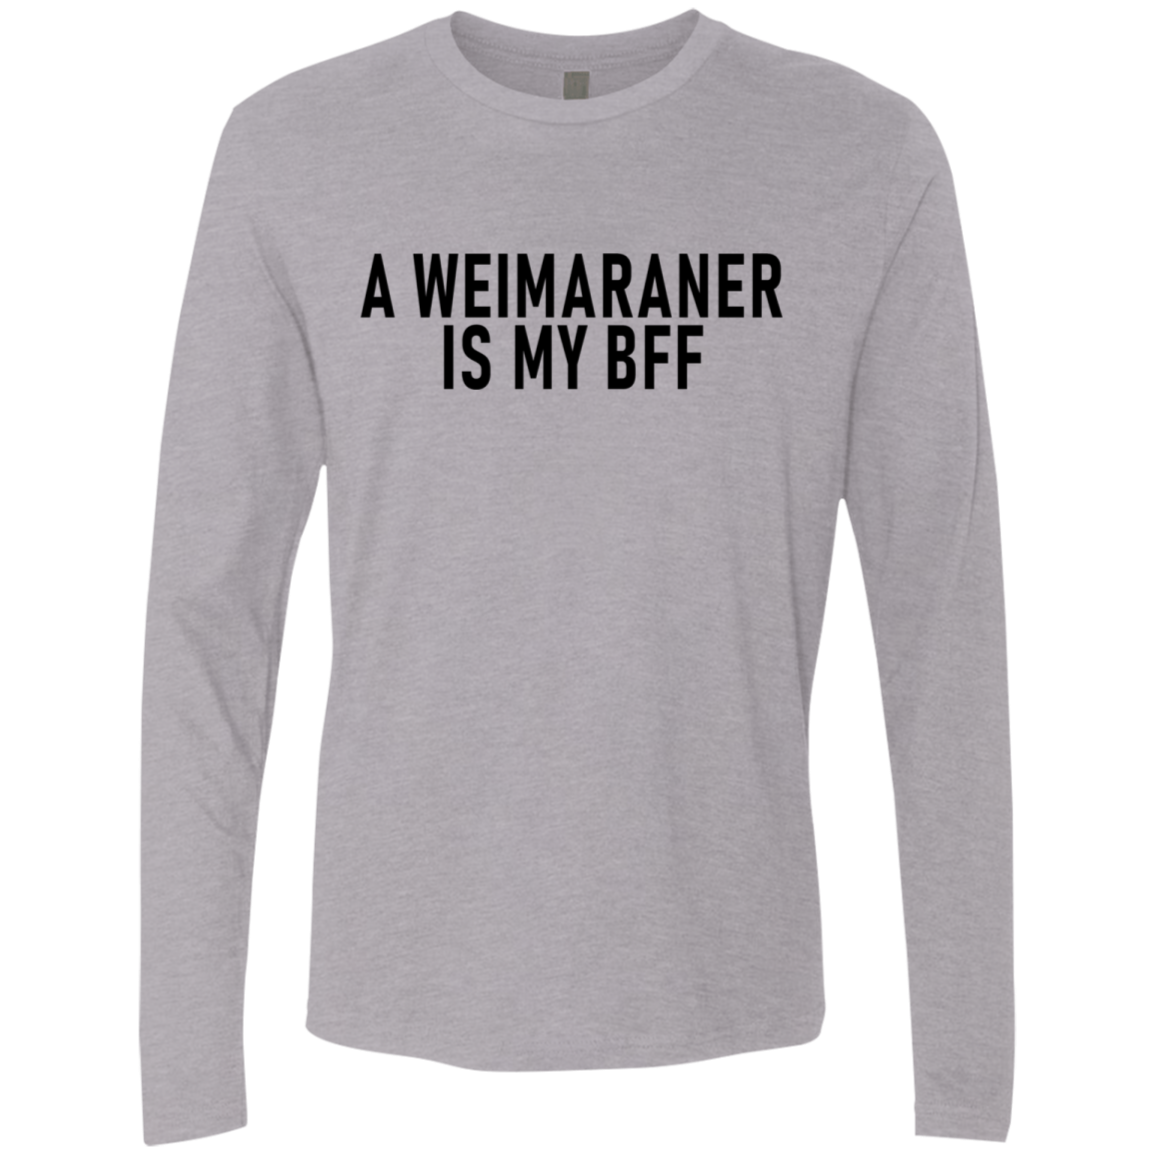 A Weimaraner Is My Bff Men's Long Sleeve Tee